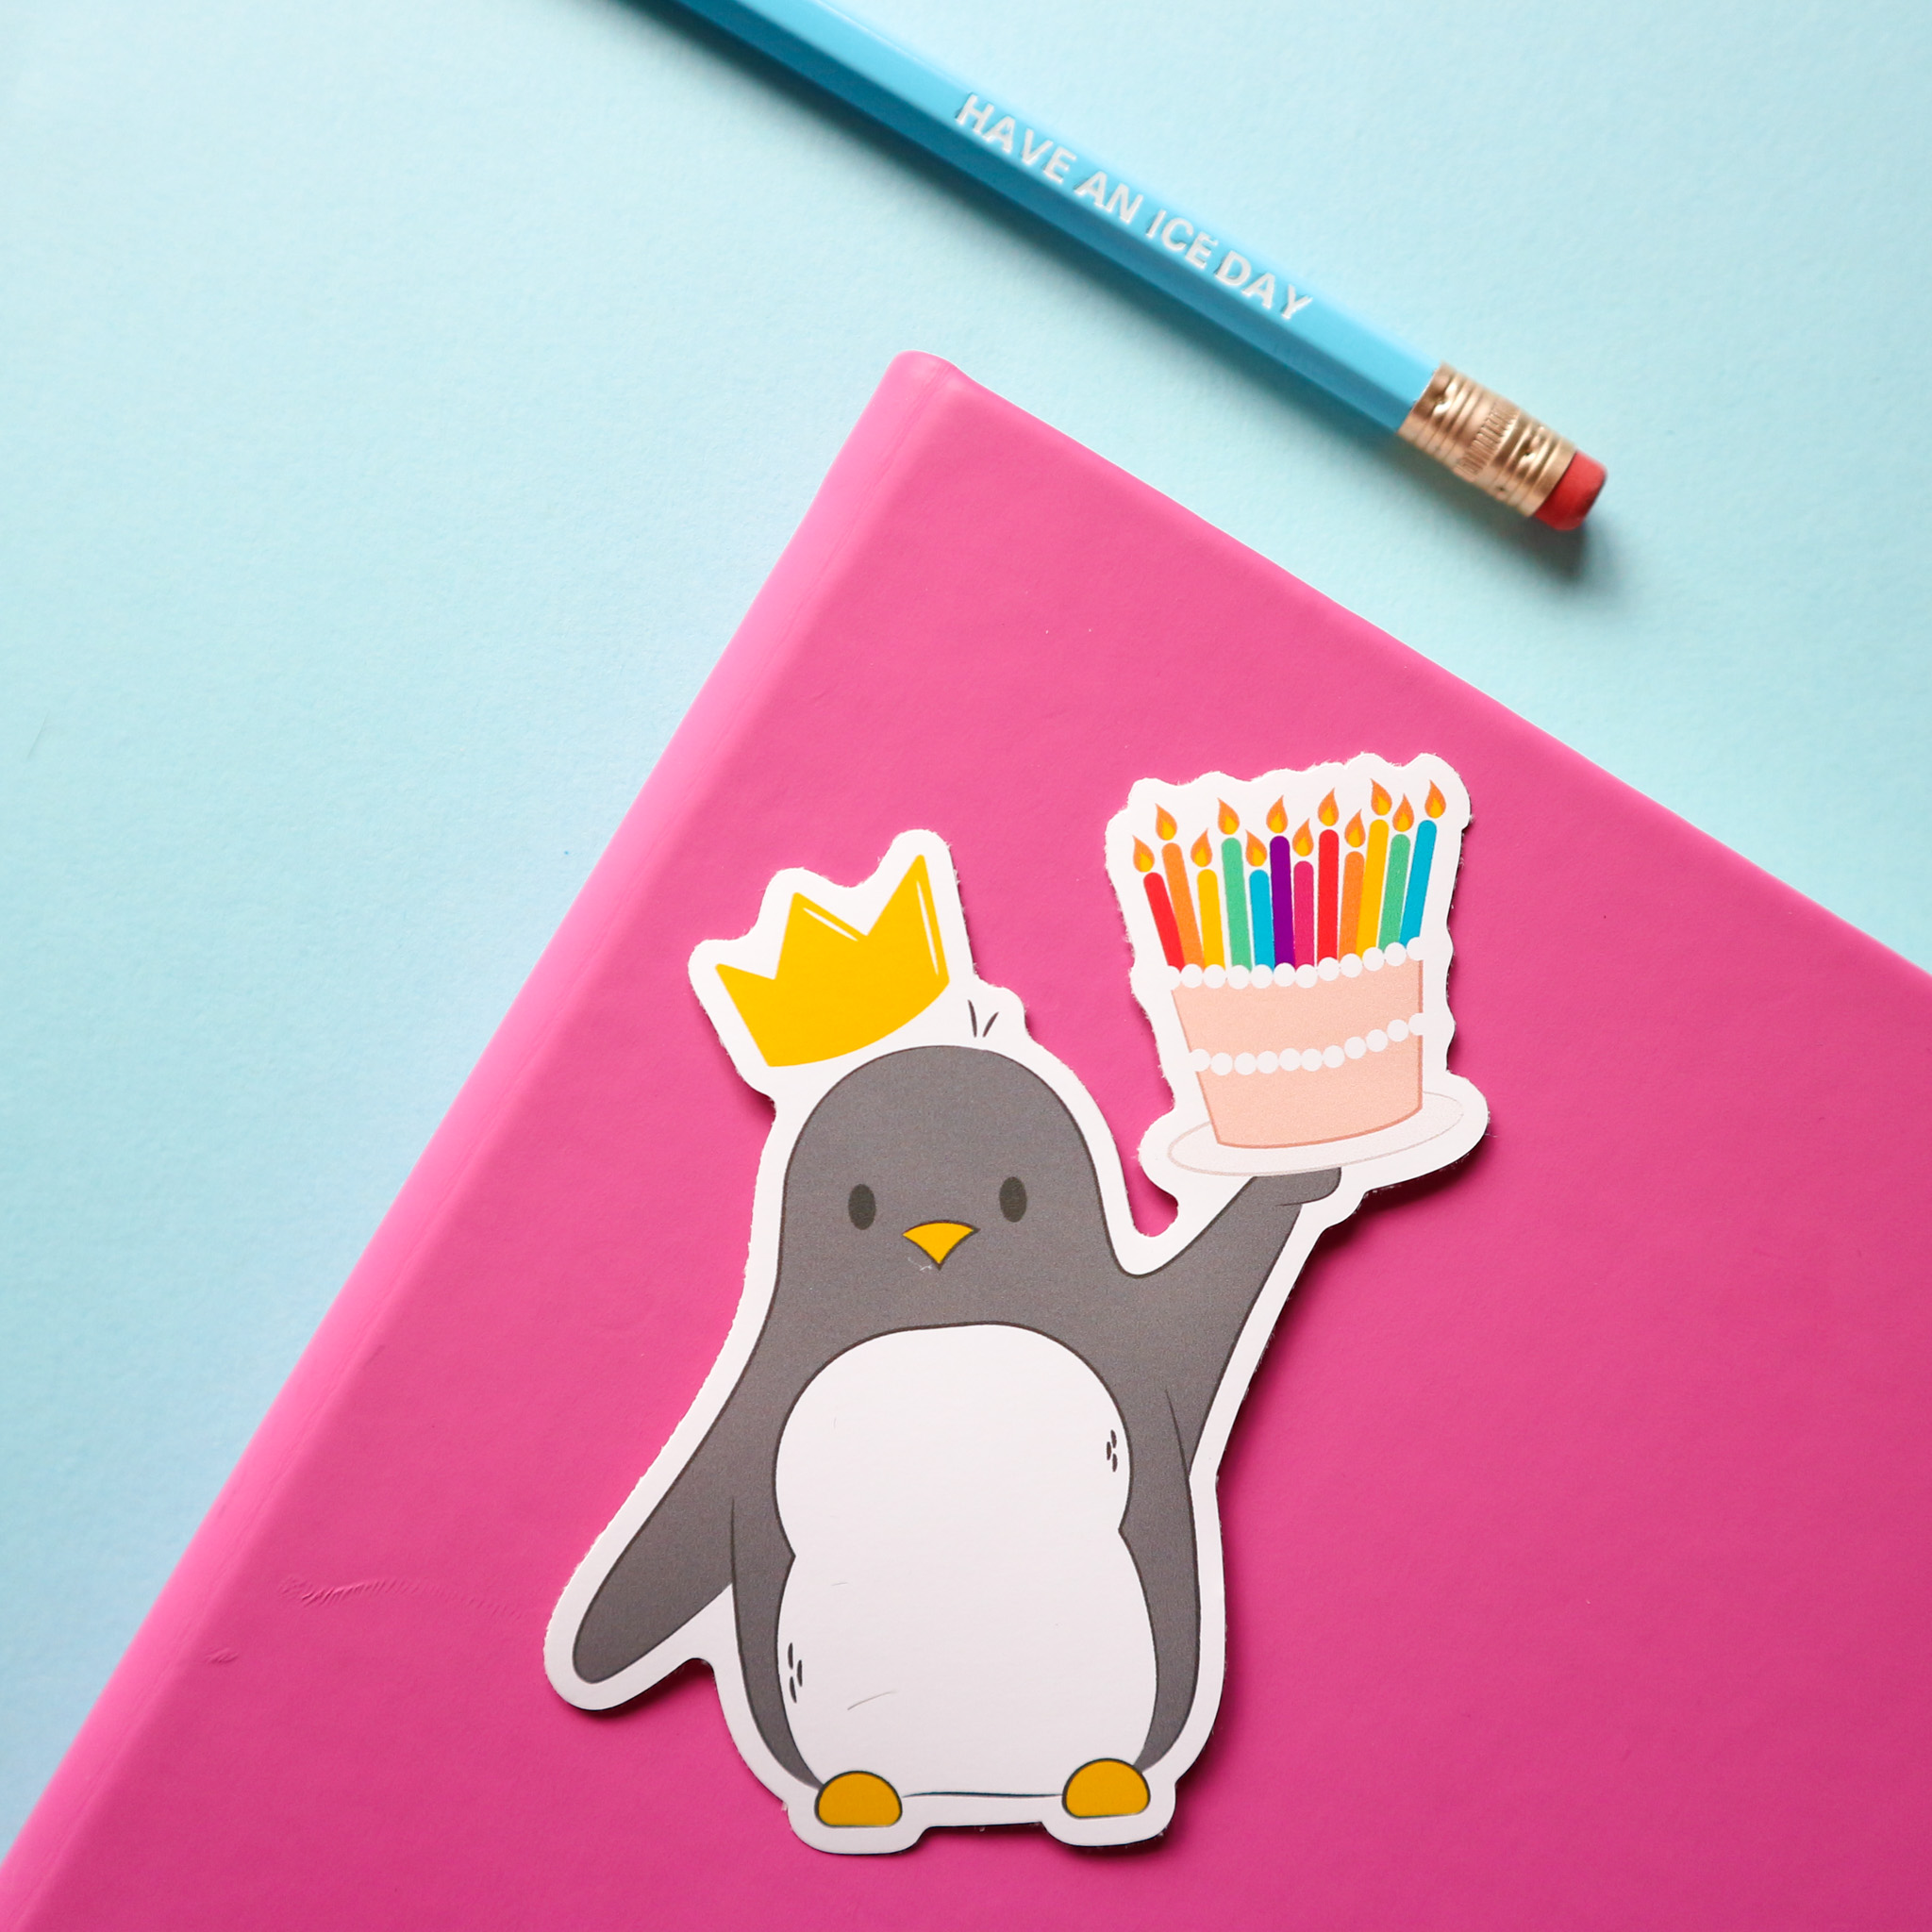 sticker design of penguin holding a birthday cake with lit, colourful candles on top and he's wearing a yellow birthday crown. The sticker is styled on a pink notebook with a blue pencil on a blue background.